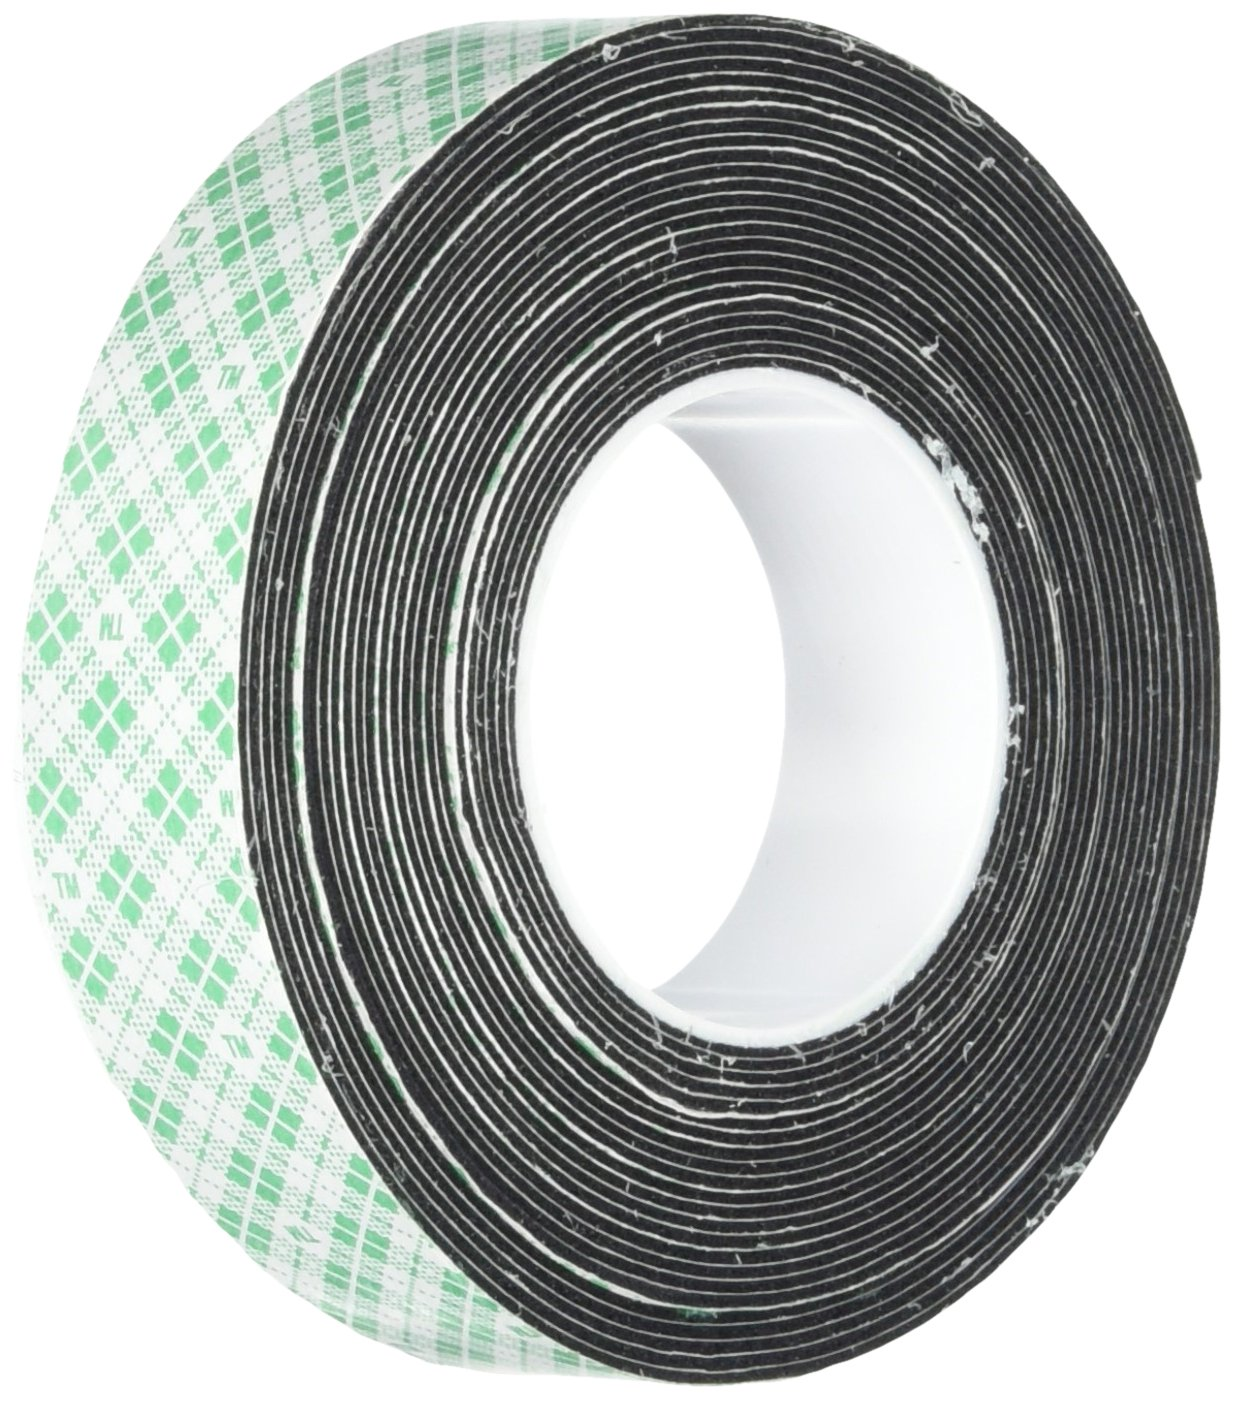 """3M 4052 Natural Polyurethane Double Coated Foam Tape, 0.75"""" width x 5yd length (1 roll)"""